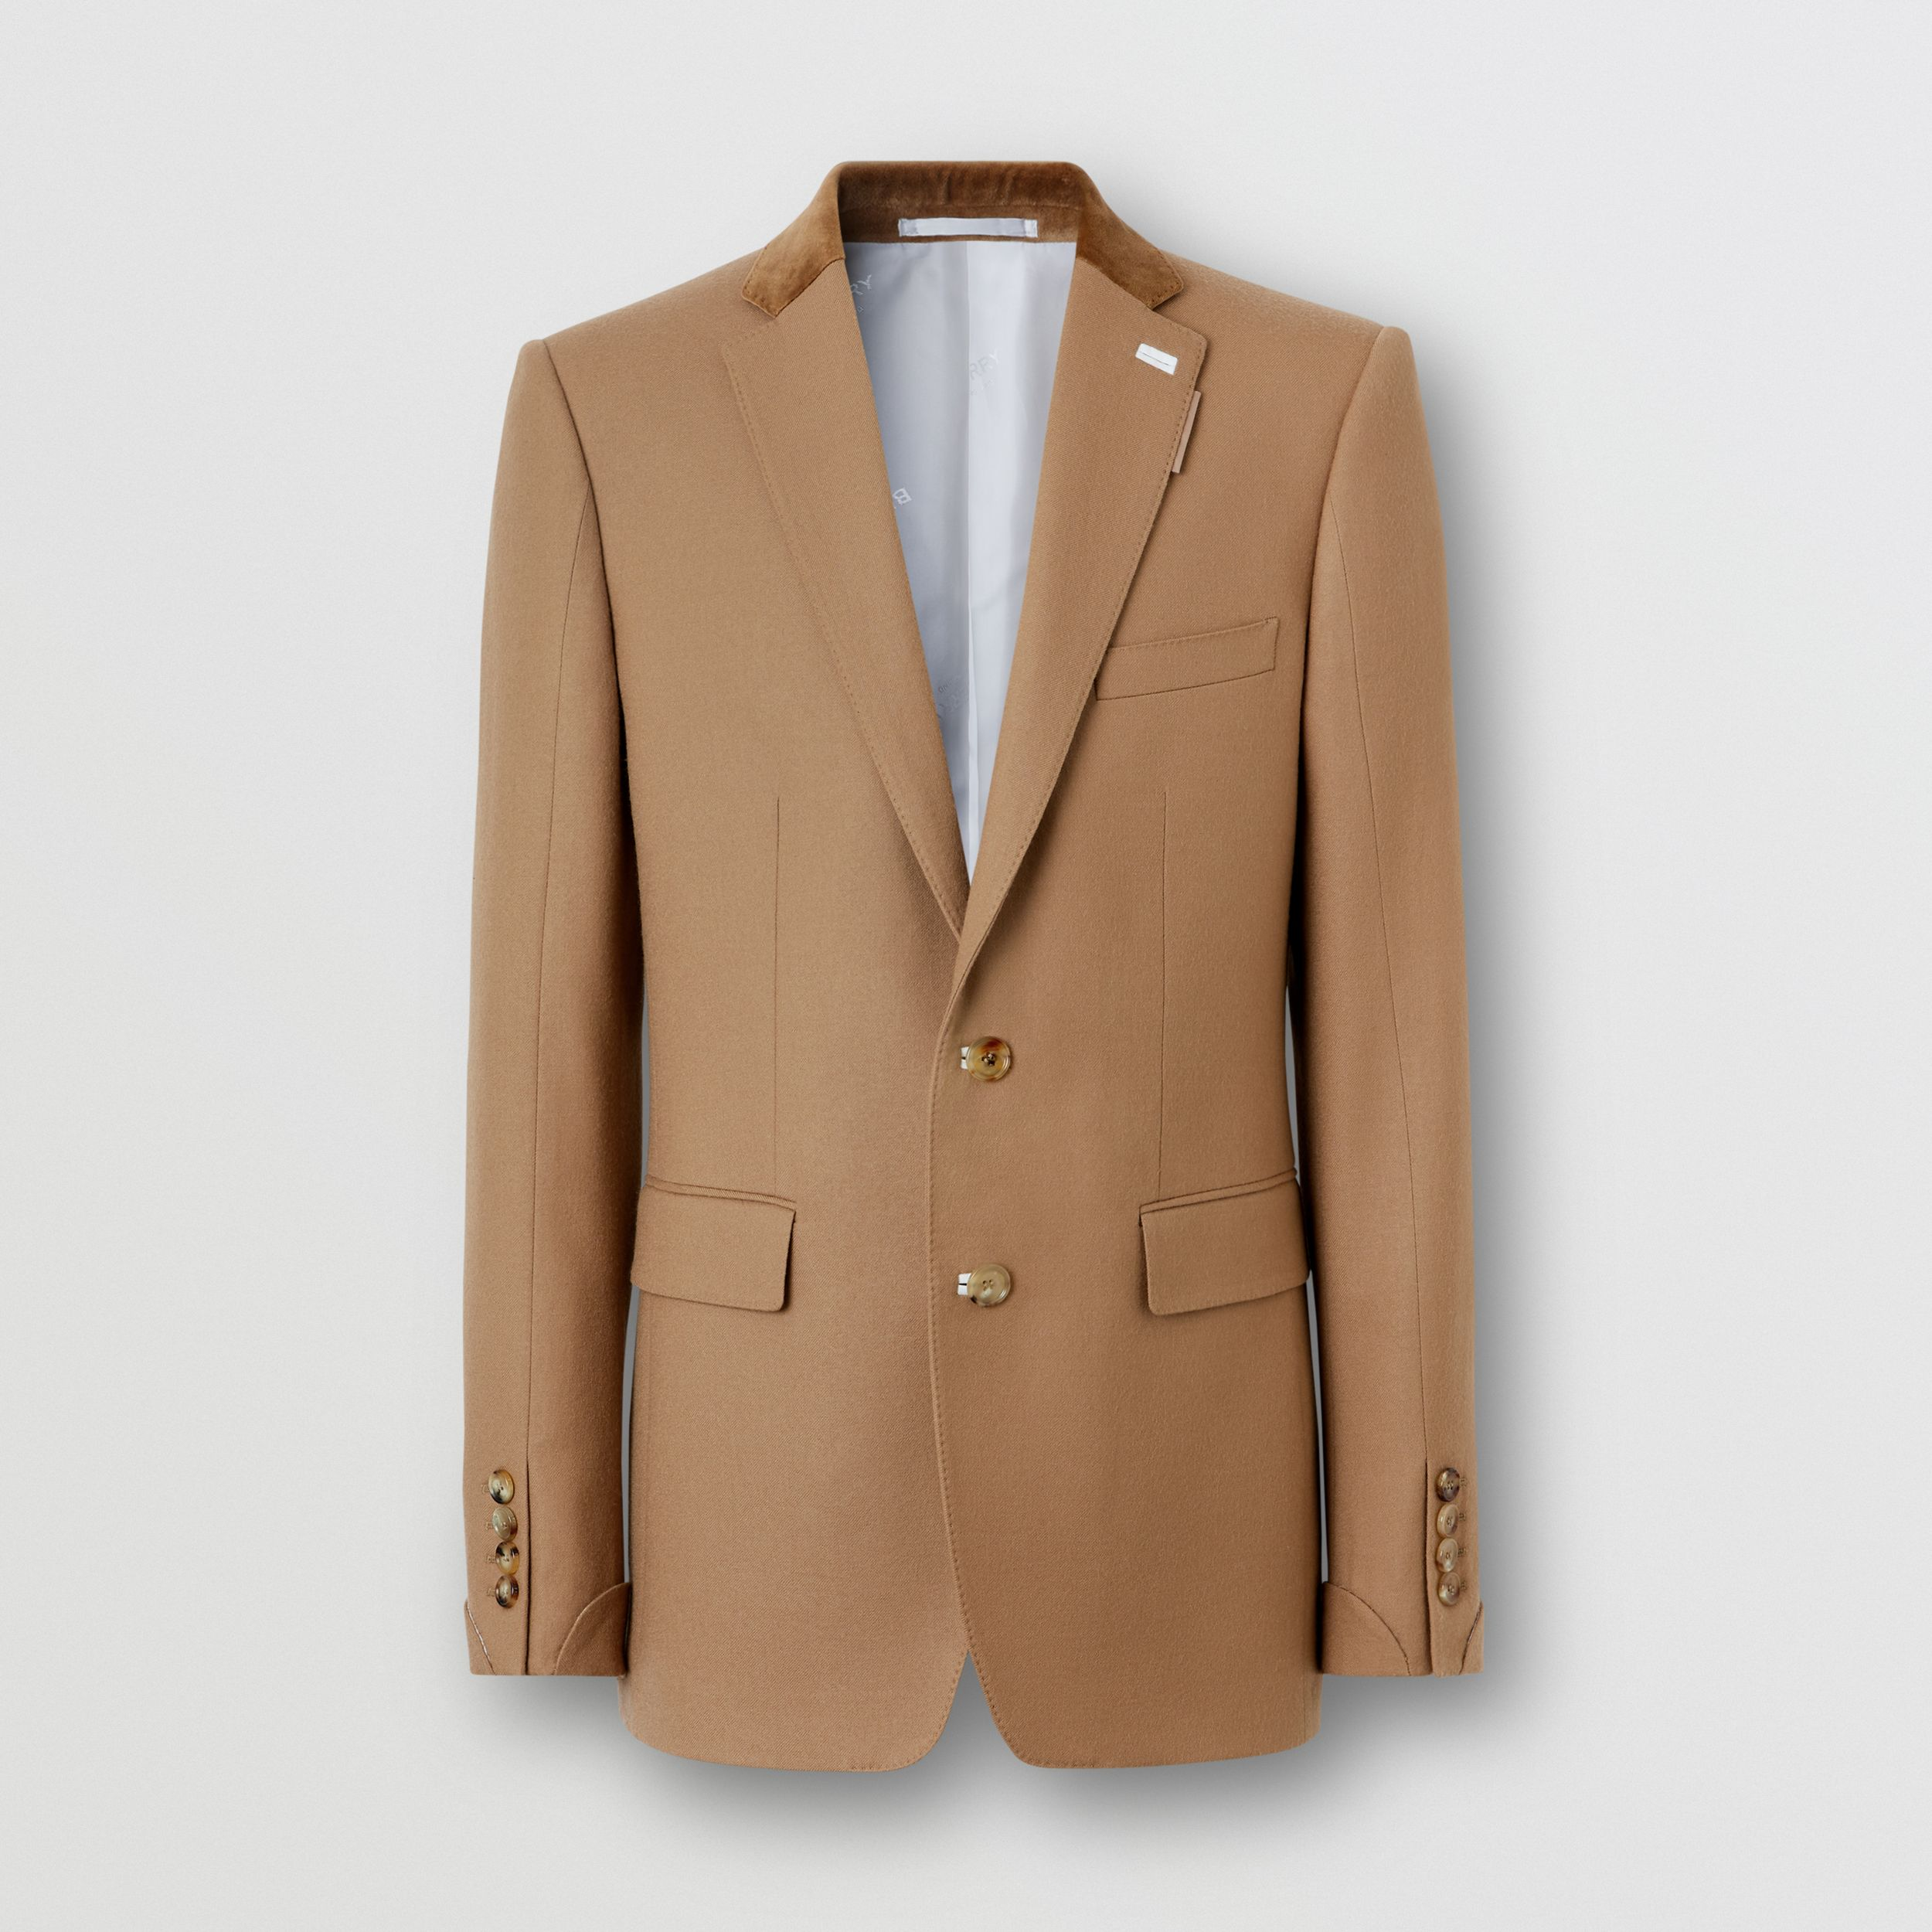 English Fit Velvet Collar Wool Flannel Tailored Jacket in Warm Camel - Men | Burberry - 4